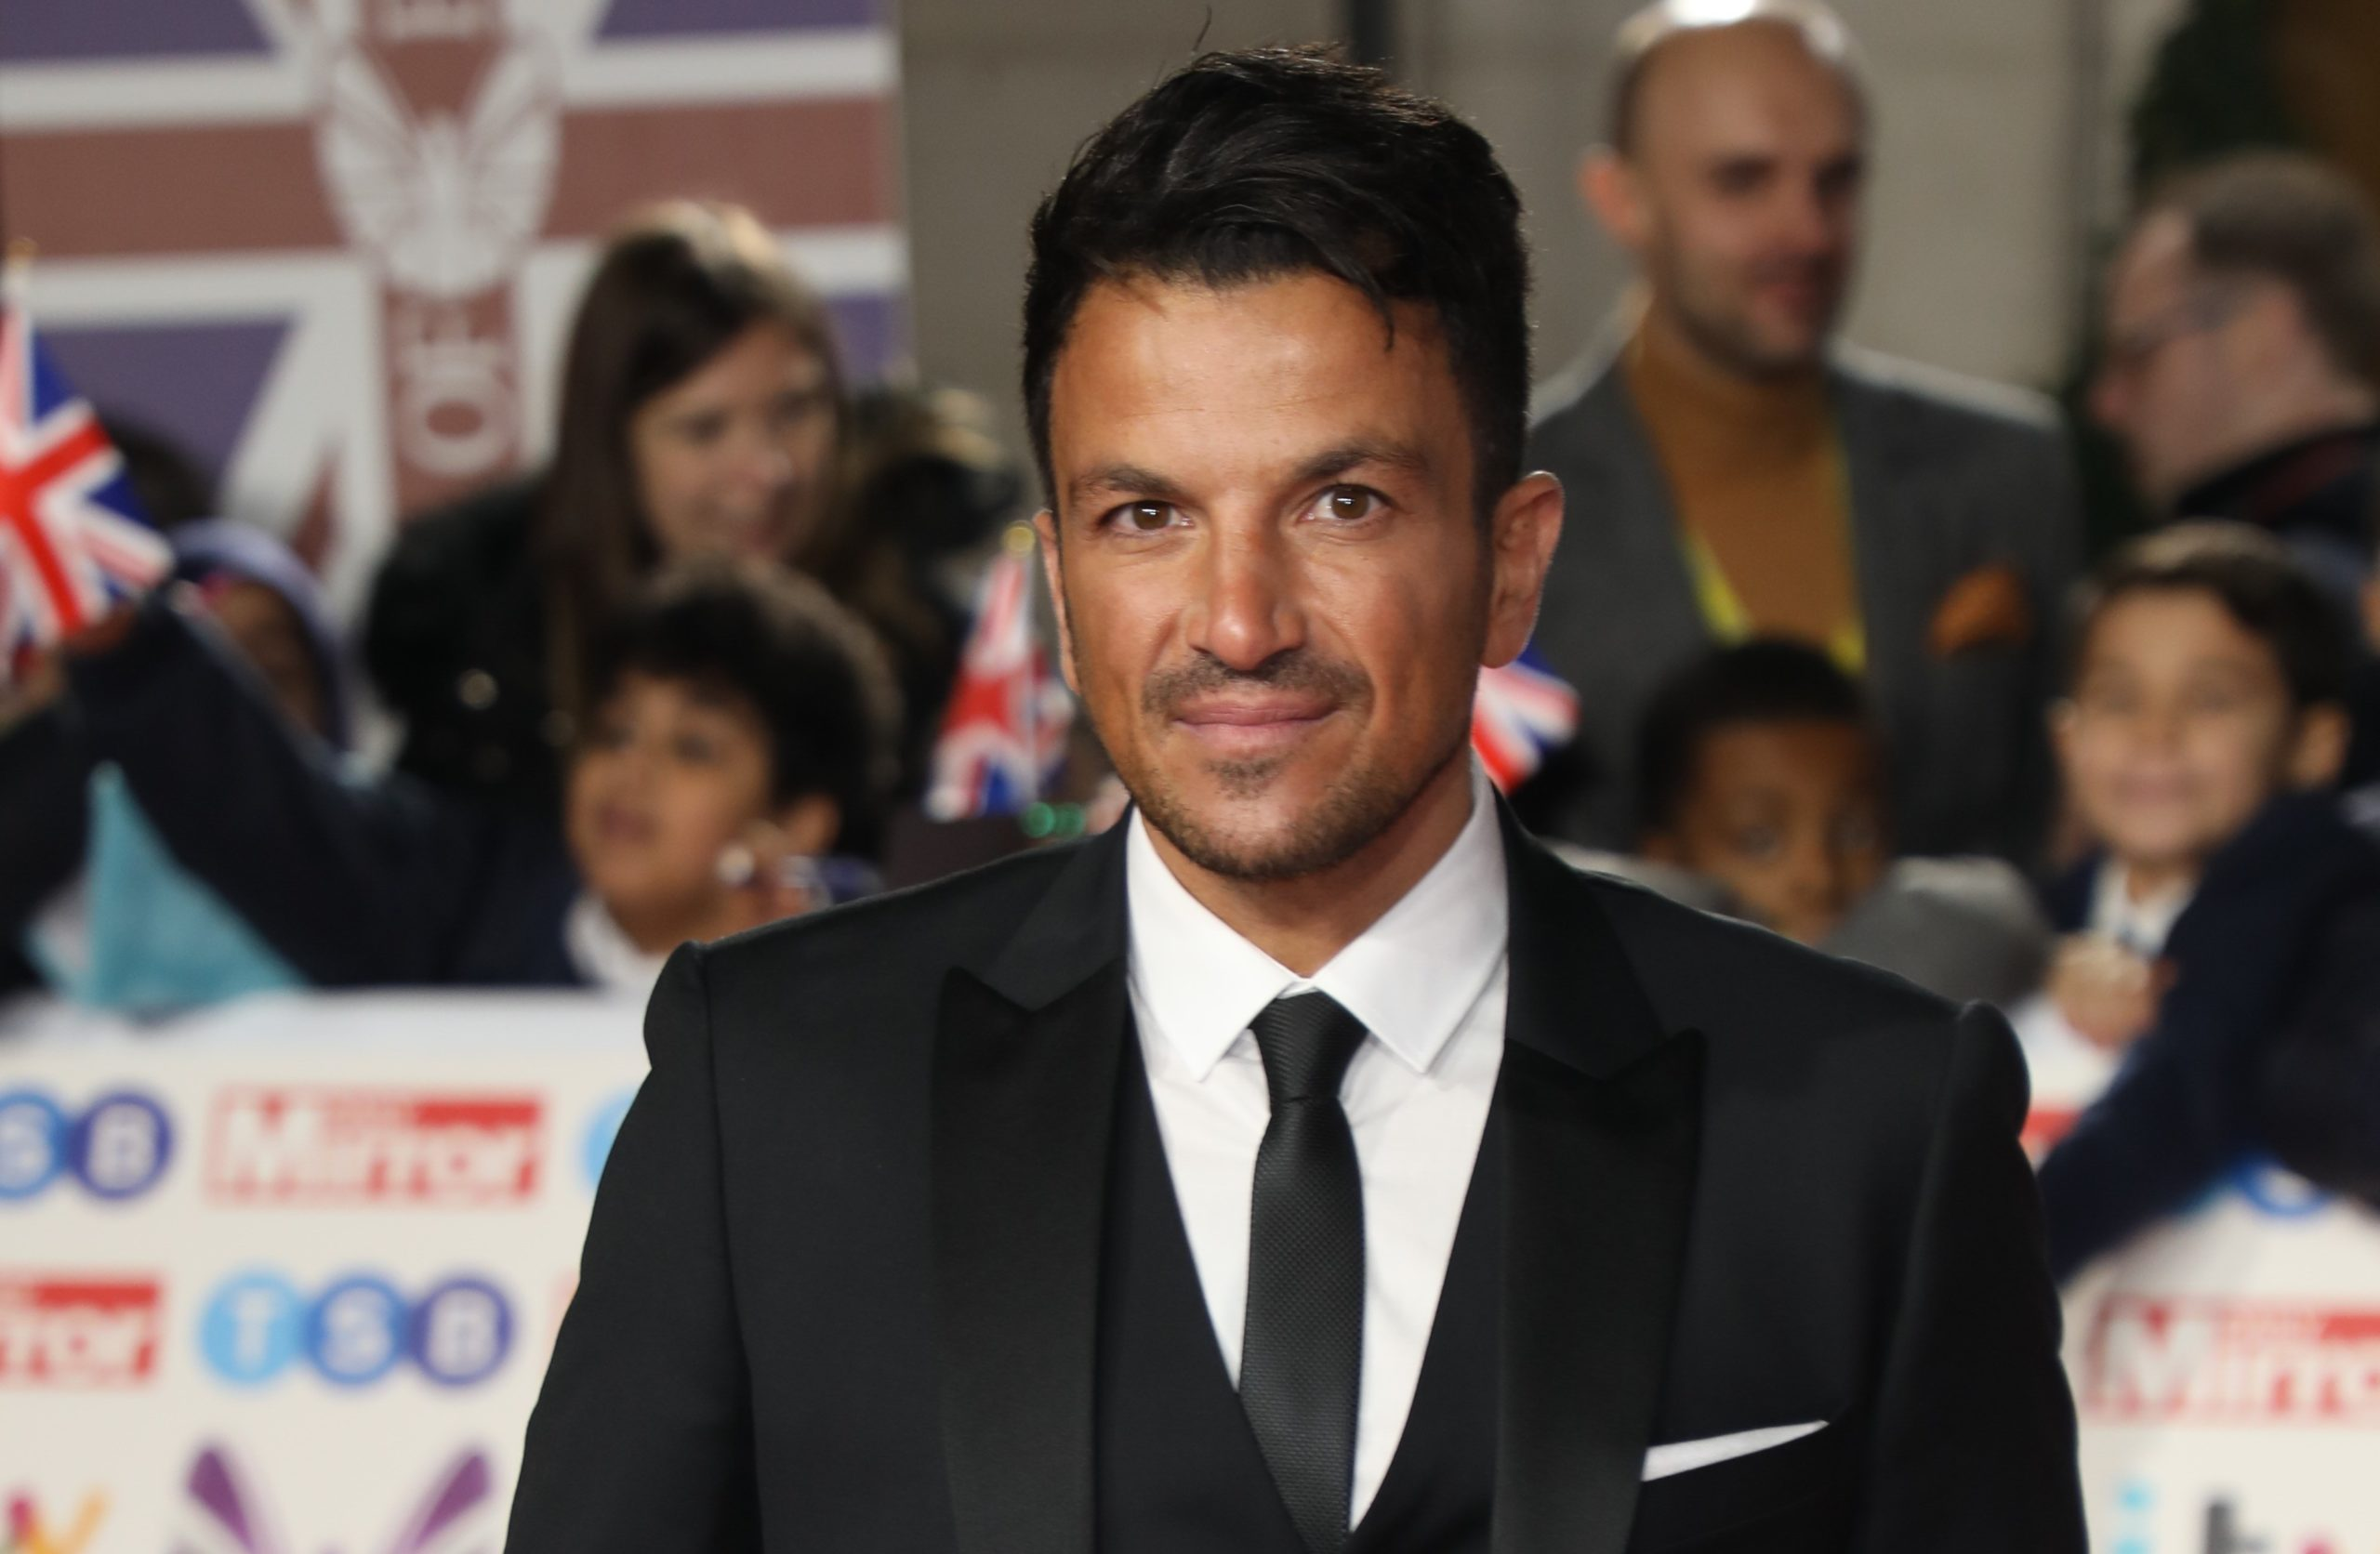 Peter Andre vows to work in Tesco with Jason Manford to help out in coronavirus crisis